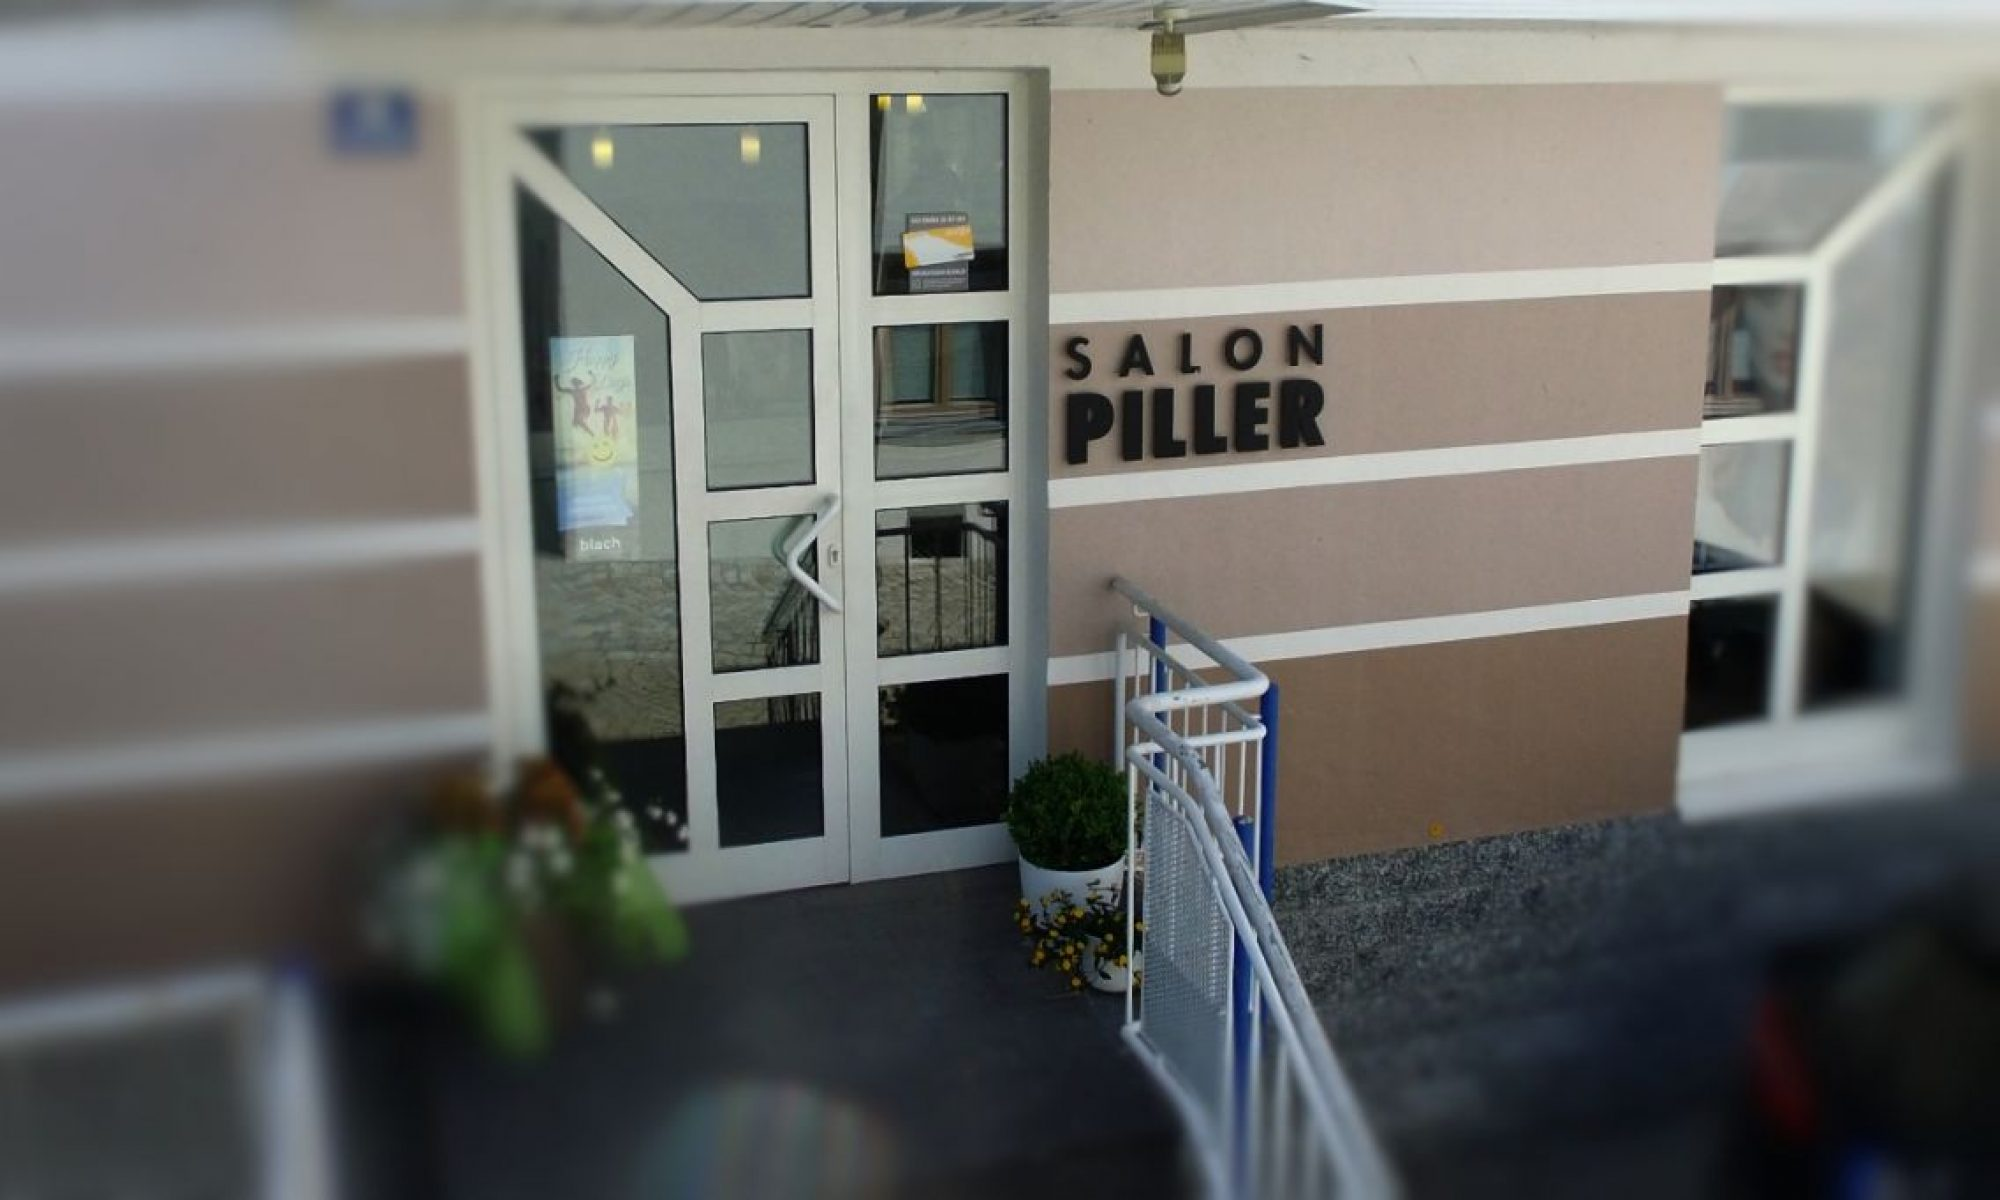 Salon Piller